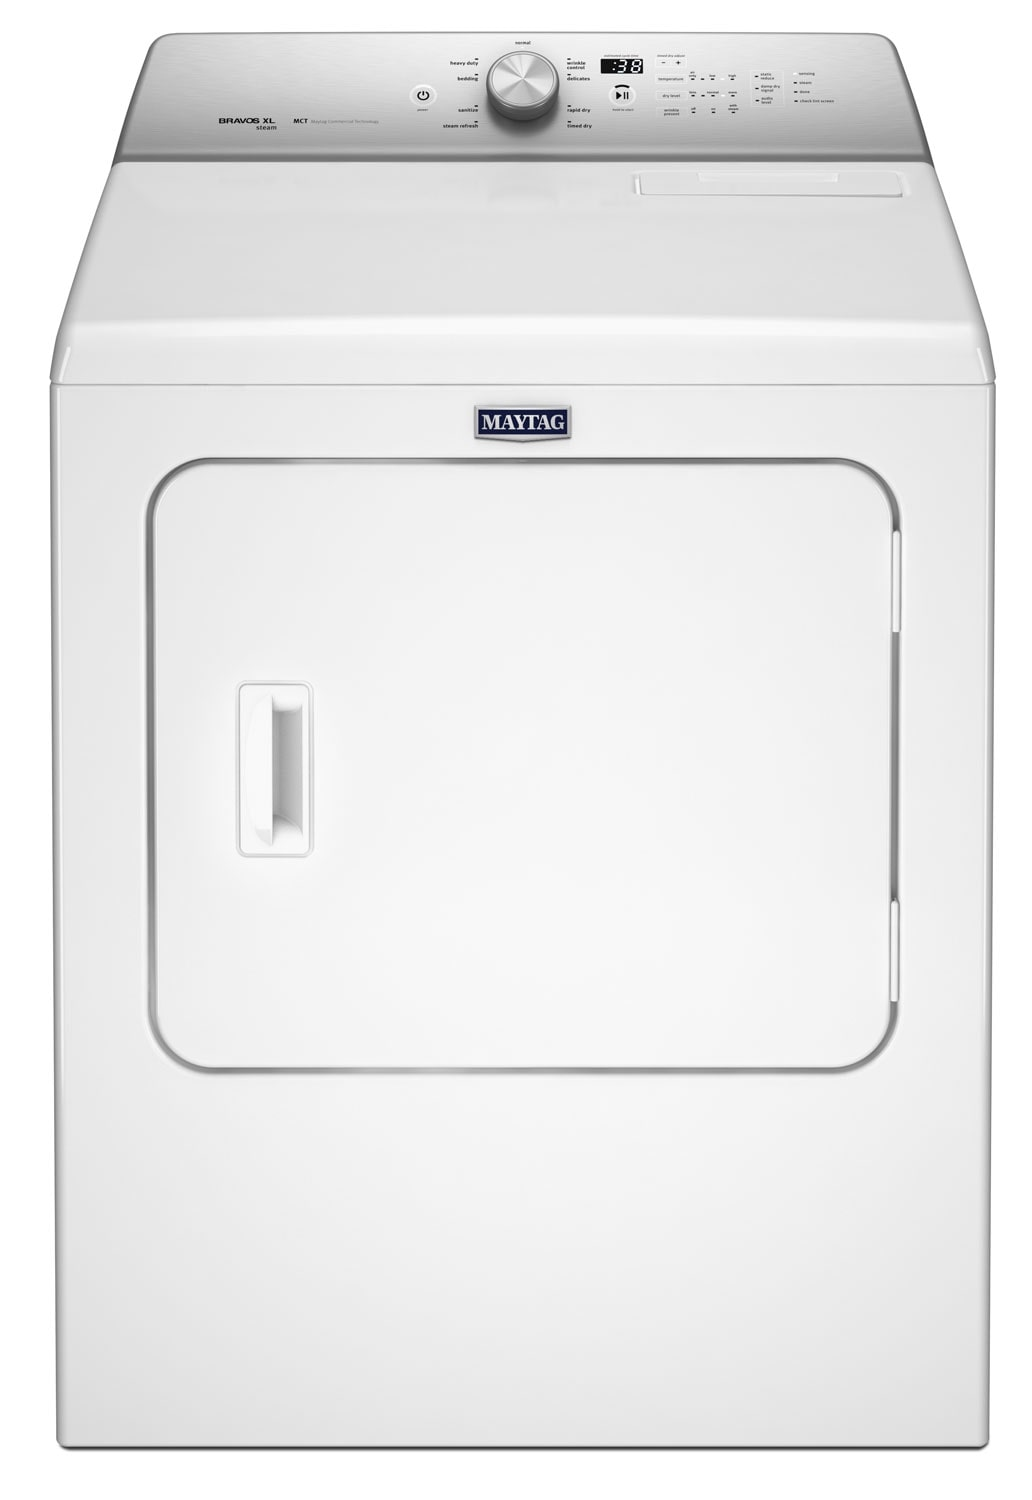 Washers and Dryers - Maytag® 7.0 Cu. Ft. Steam Gas Dryer - White